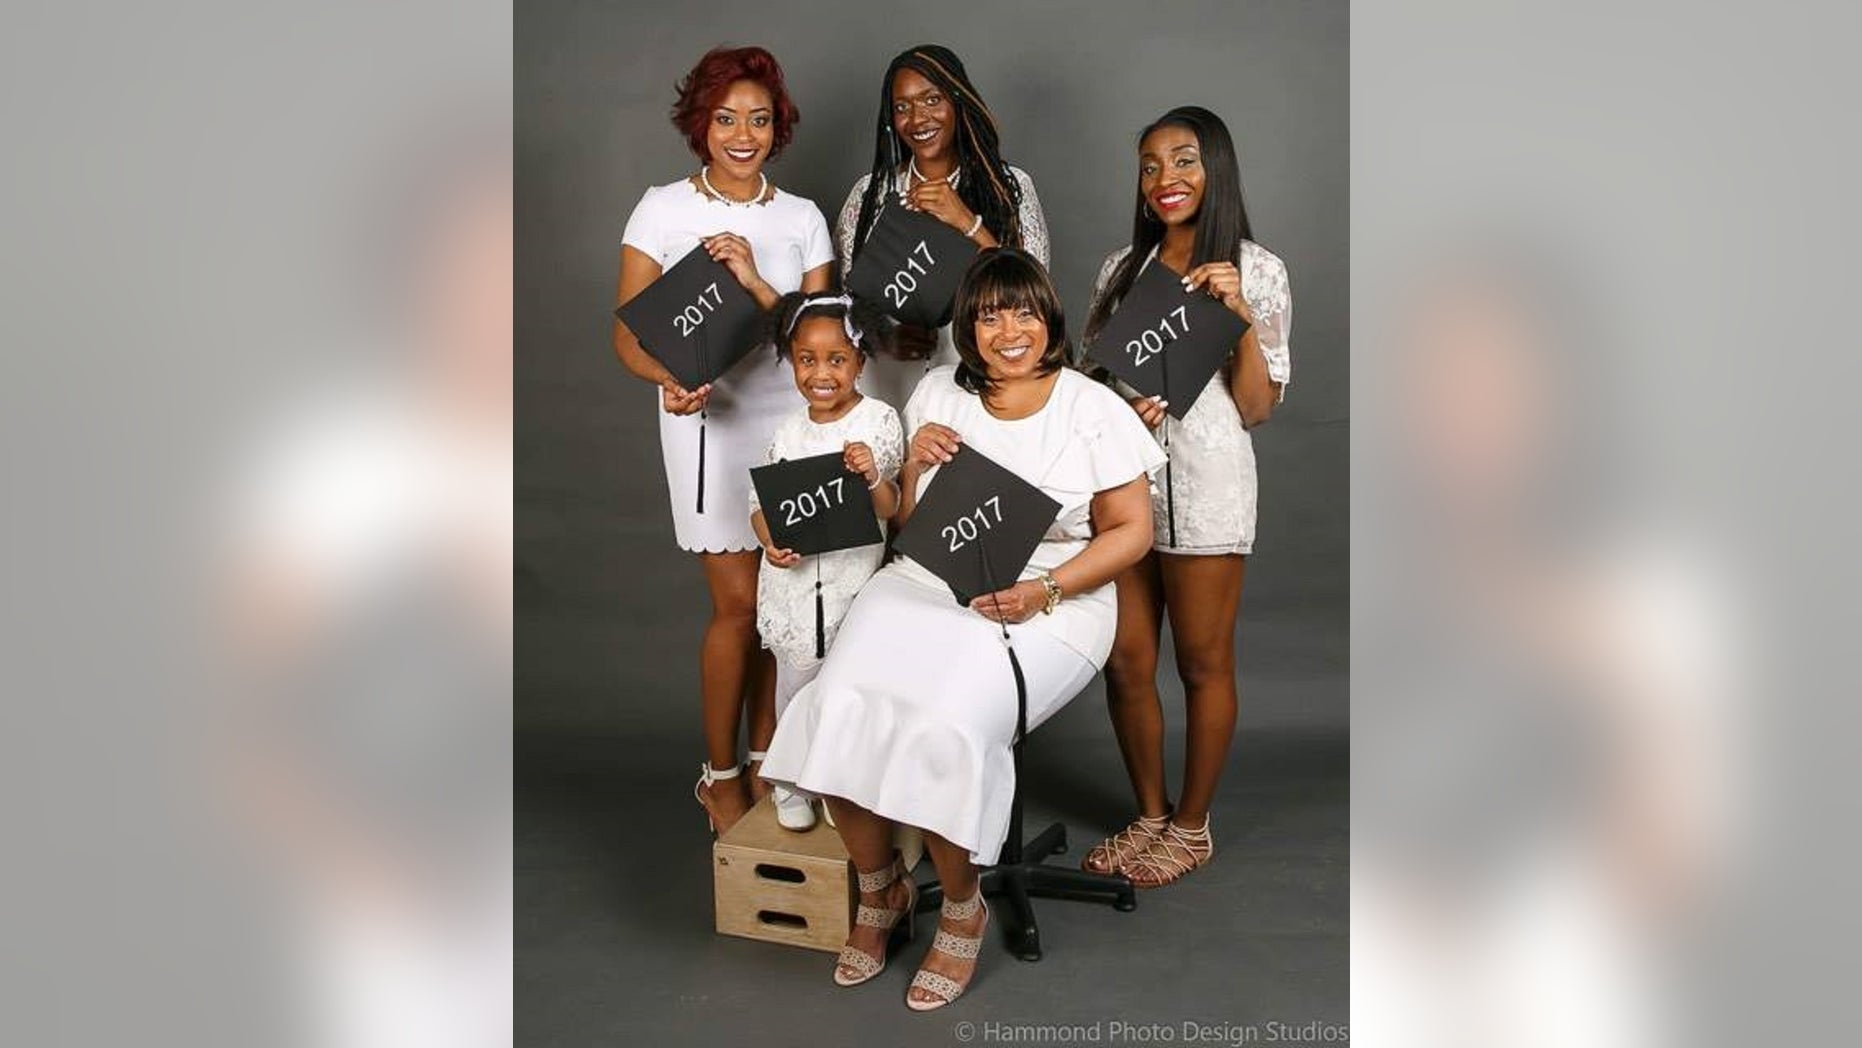 LaWanda Flennoy, received her associate degree from South Suburban College in South Holland. Her two oldest daughters, Paris and Amari, graduated from college this month, her youngest, Jade, finished high school and will graduate. Granddaughter Brooklyn, Paris's daughter, will be graduating from kindergarten.